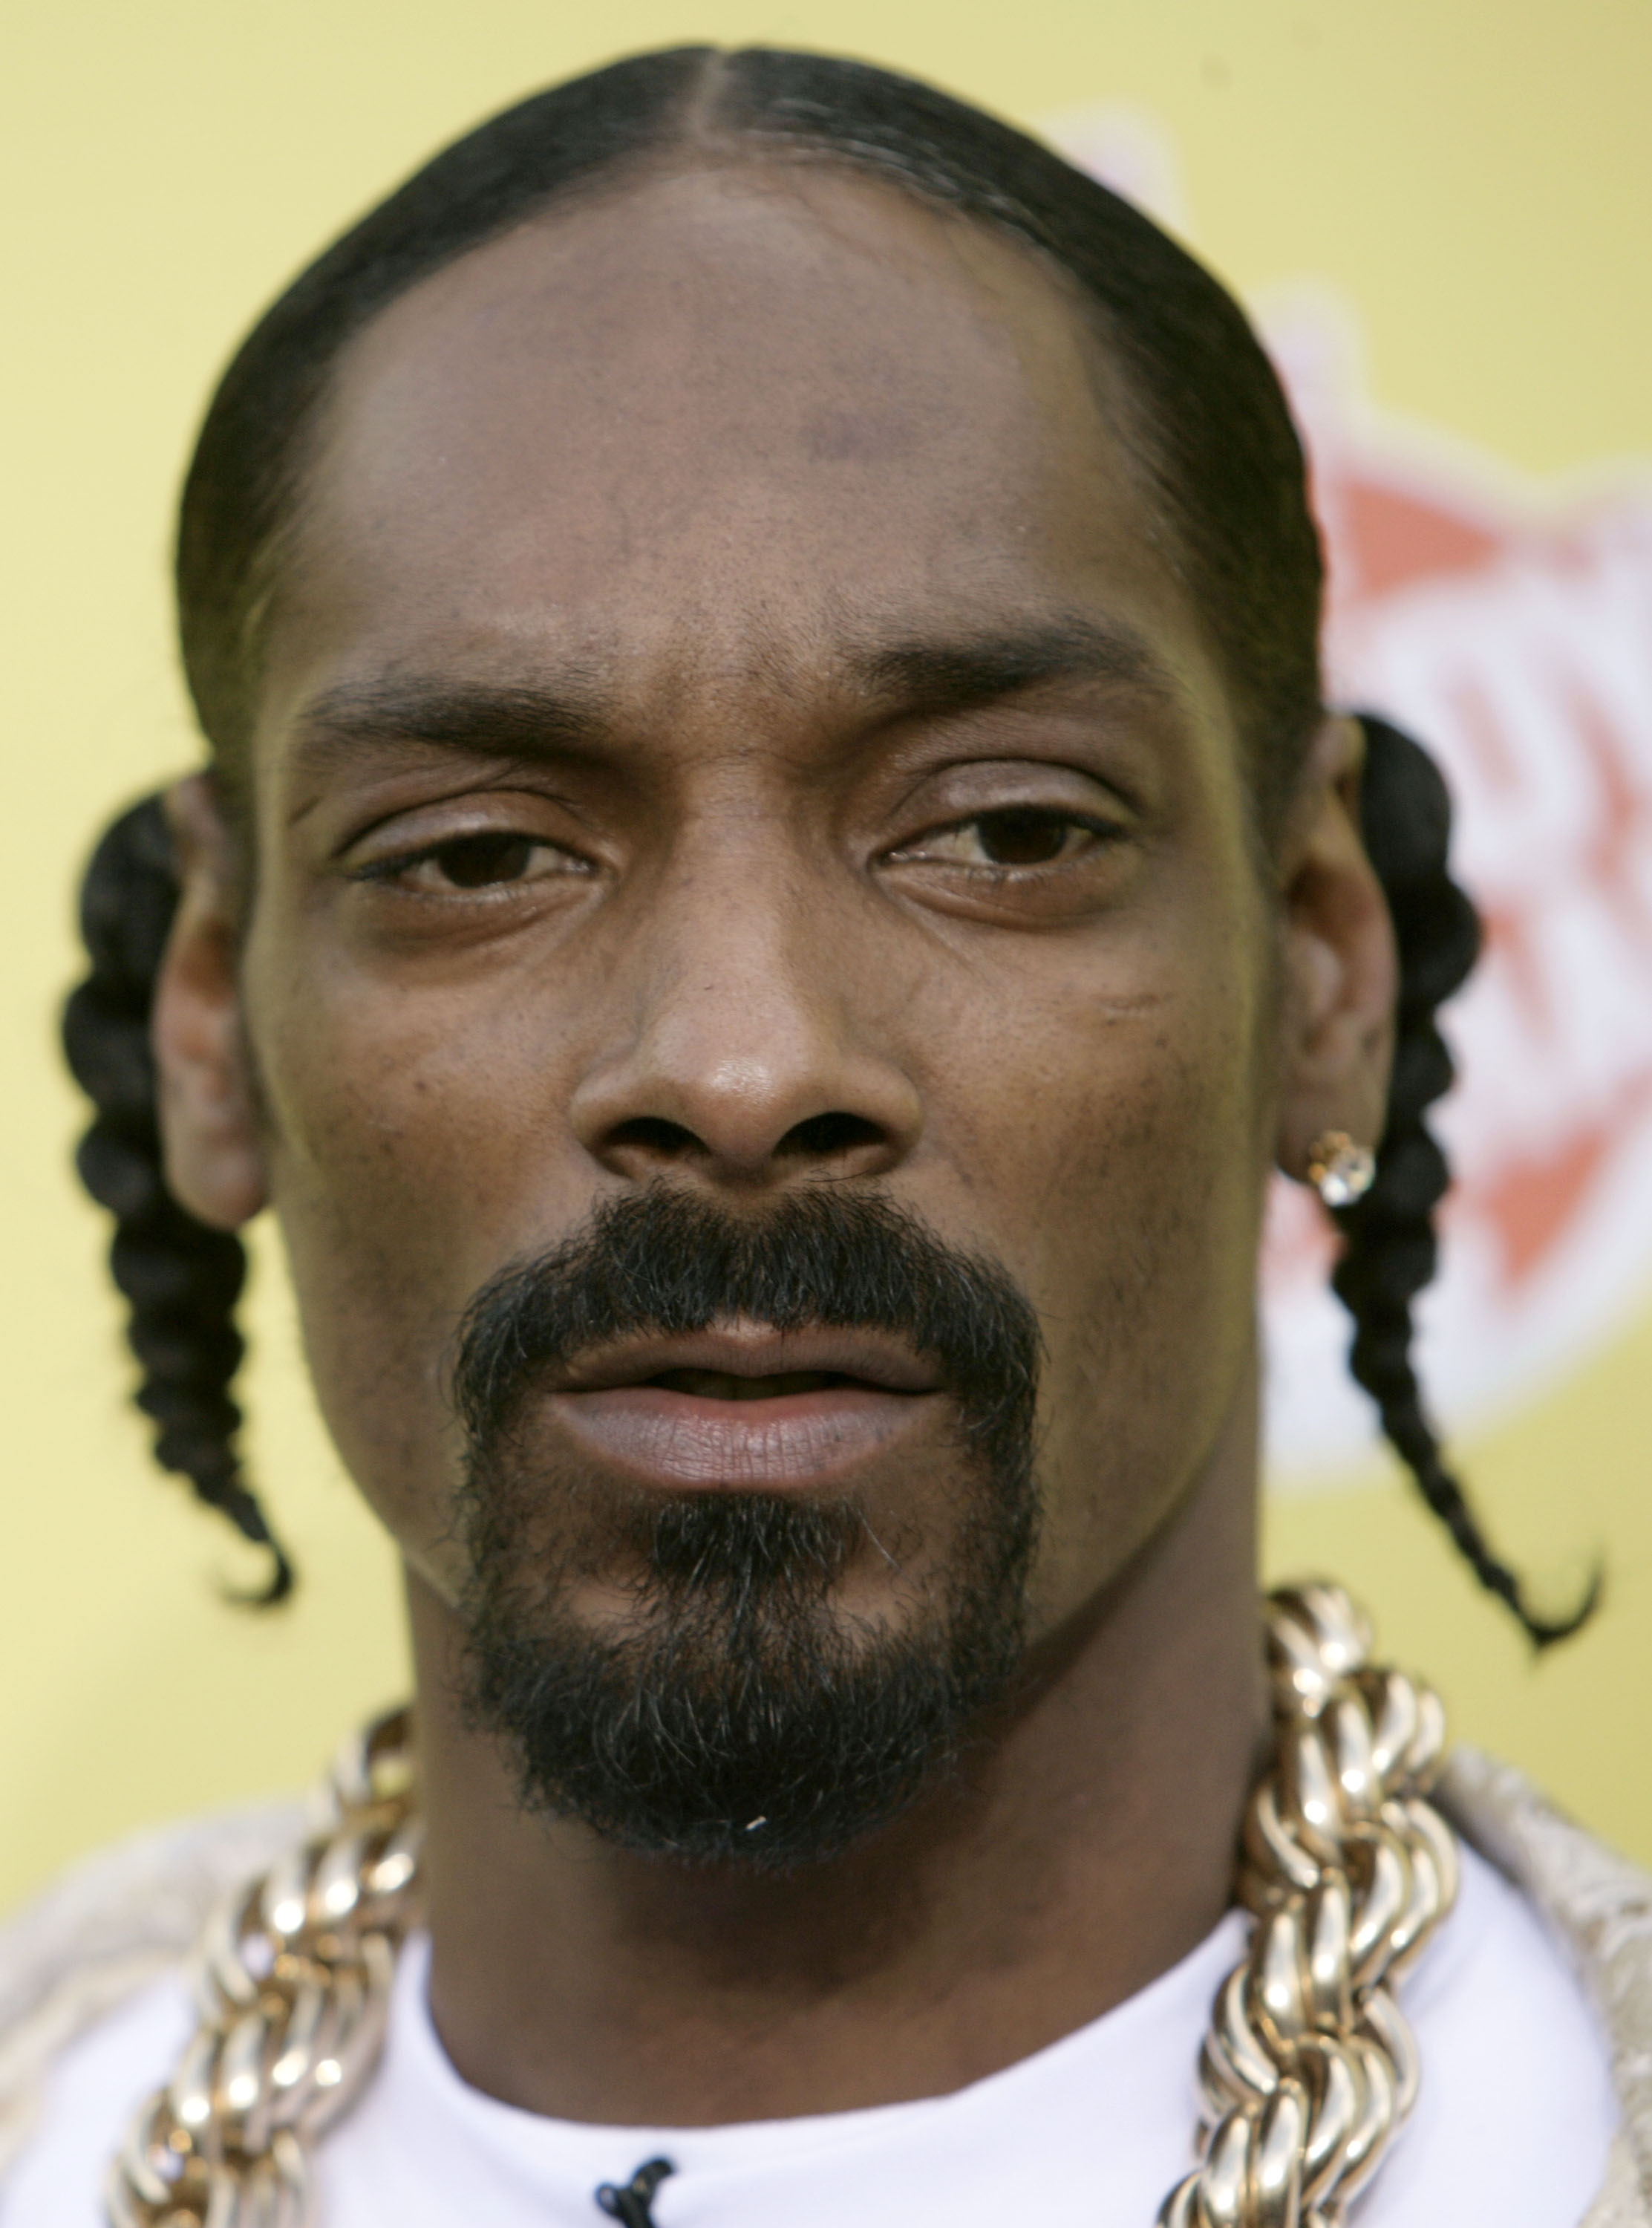 Snoop Dogg Backgrounds on Wallpapers Vista